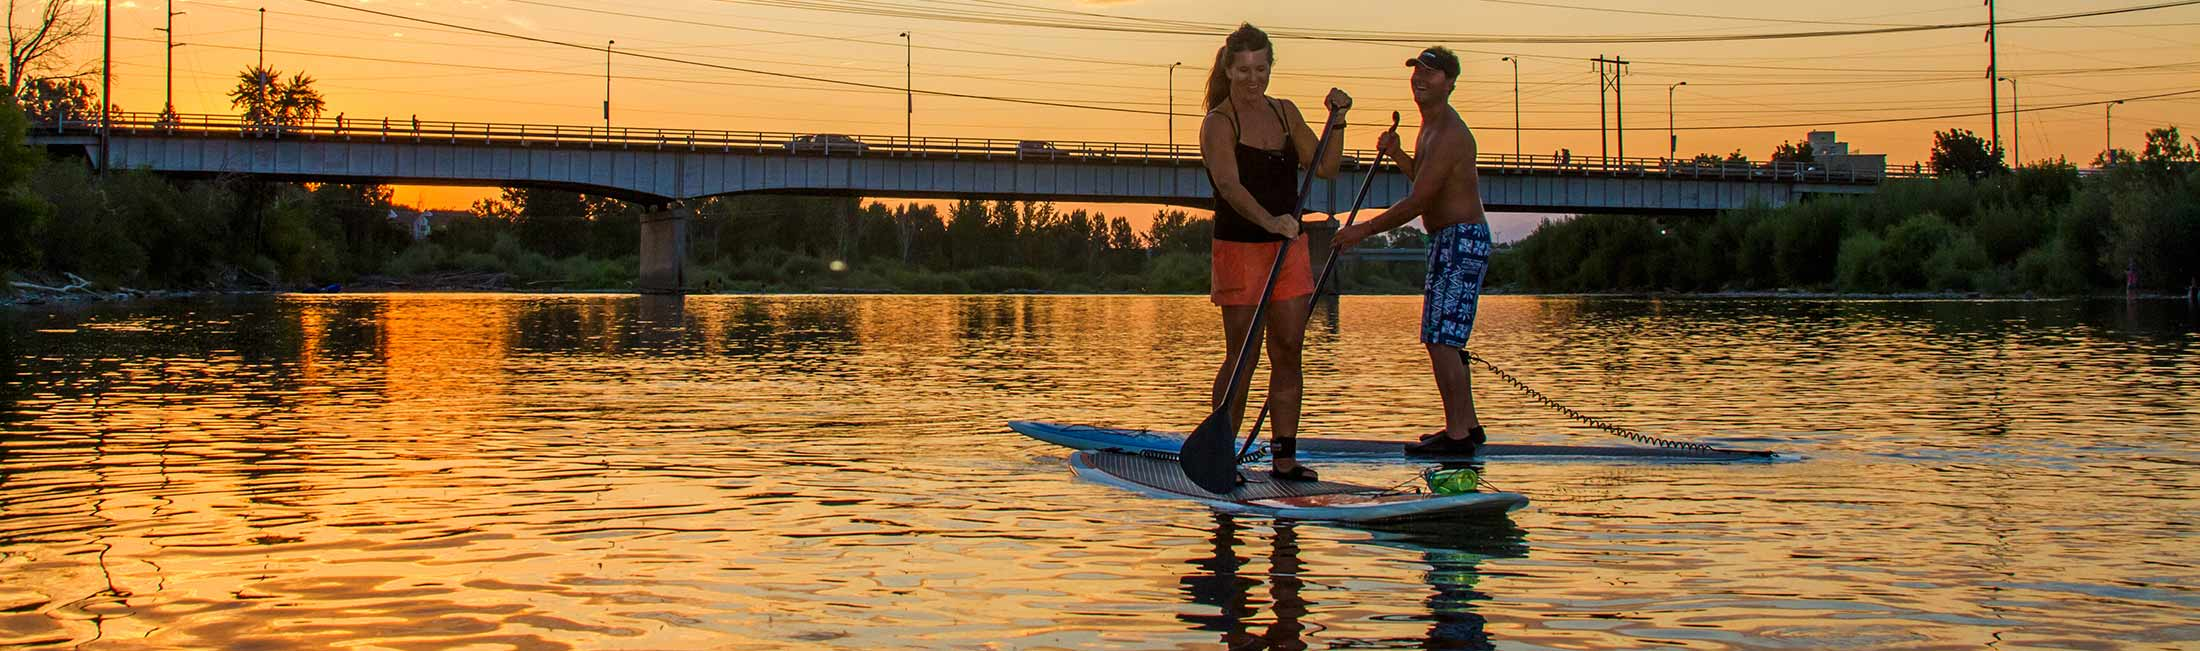 Stand Up Paddle Boarding in Missoula, Montana